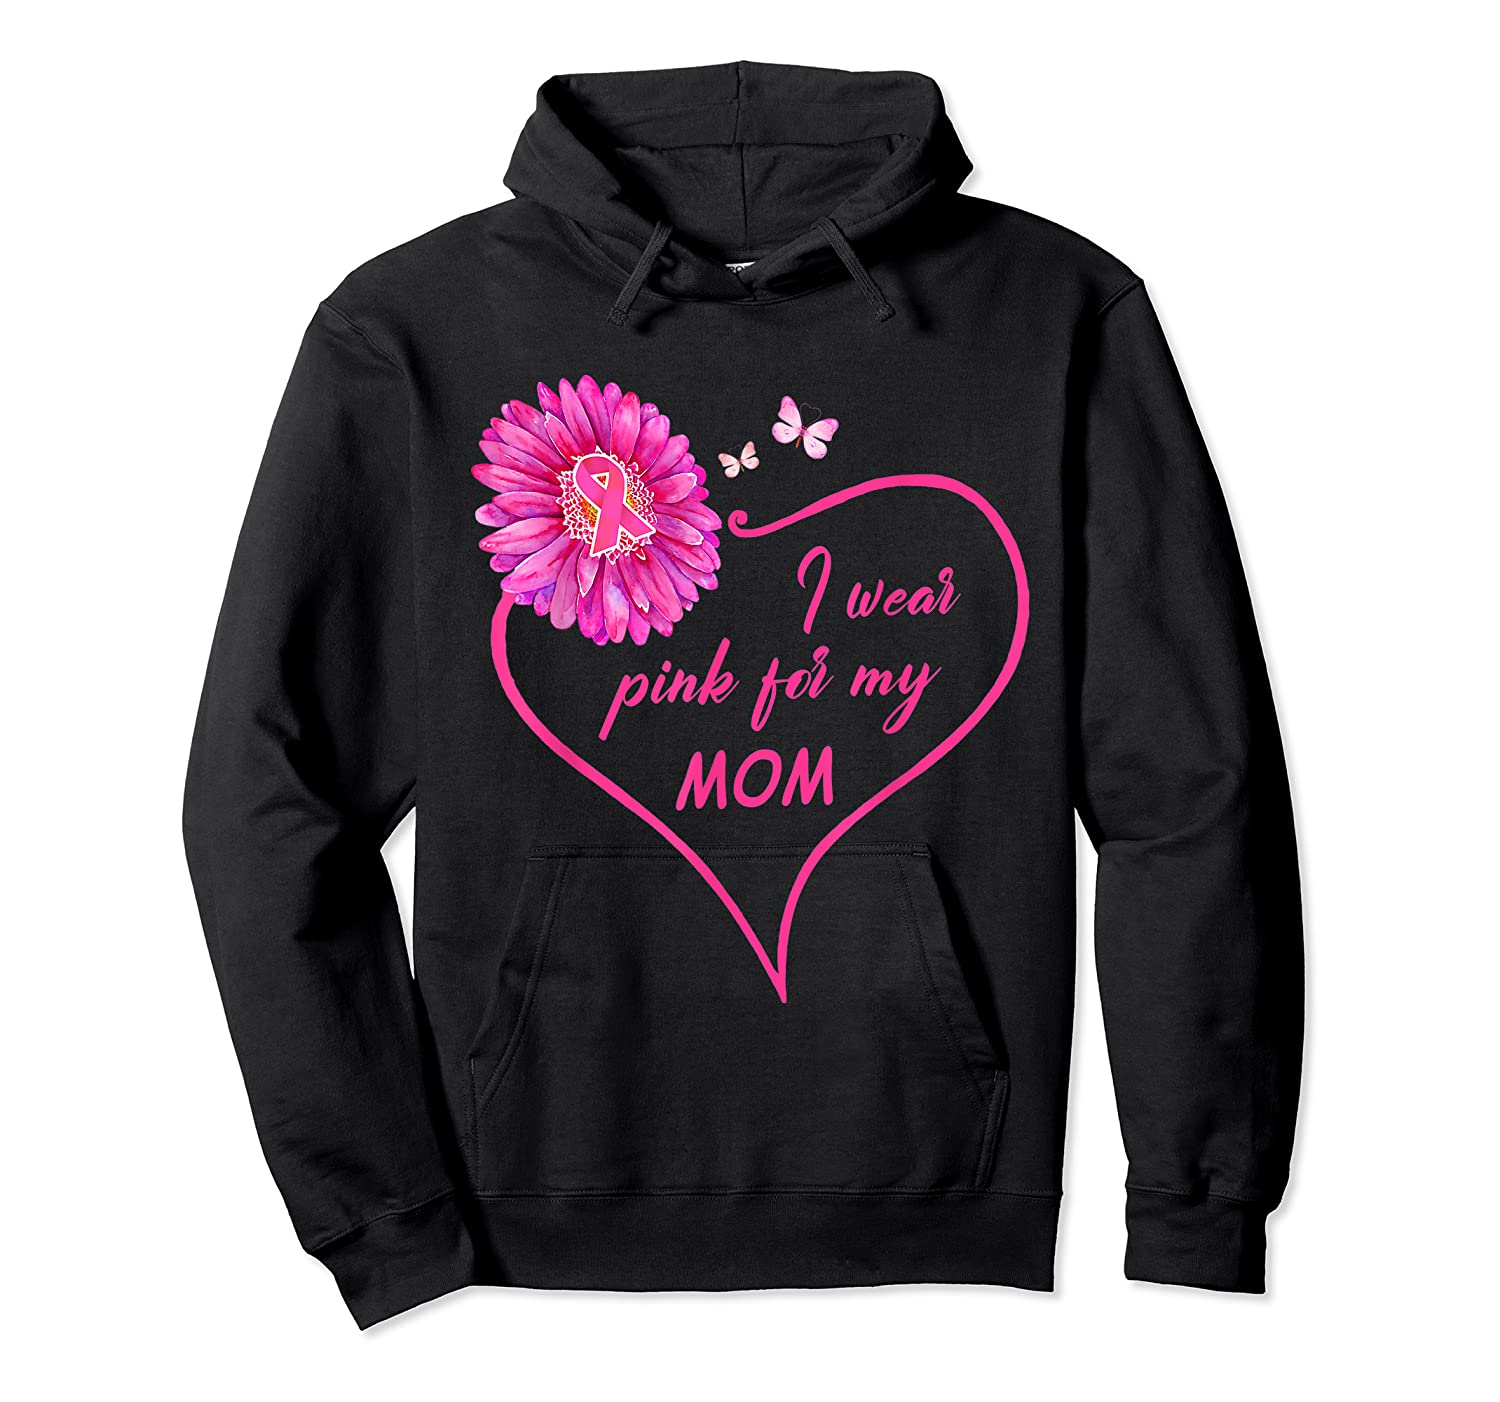 I Wear Pink For My Mom Daisy Flower Breast Cancer Awareness T Shirt Unisex Pullover Hoodie